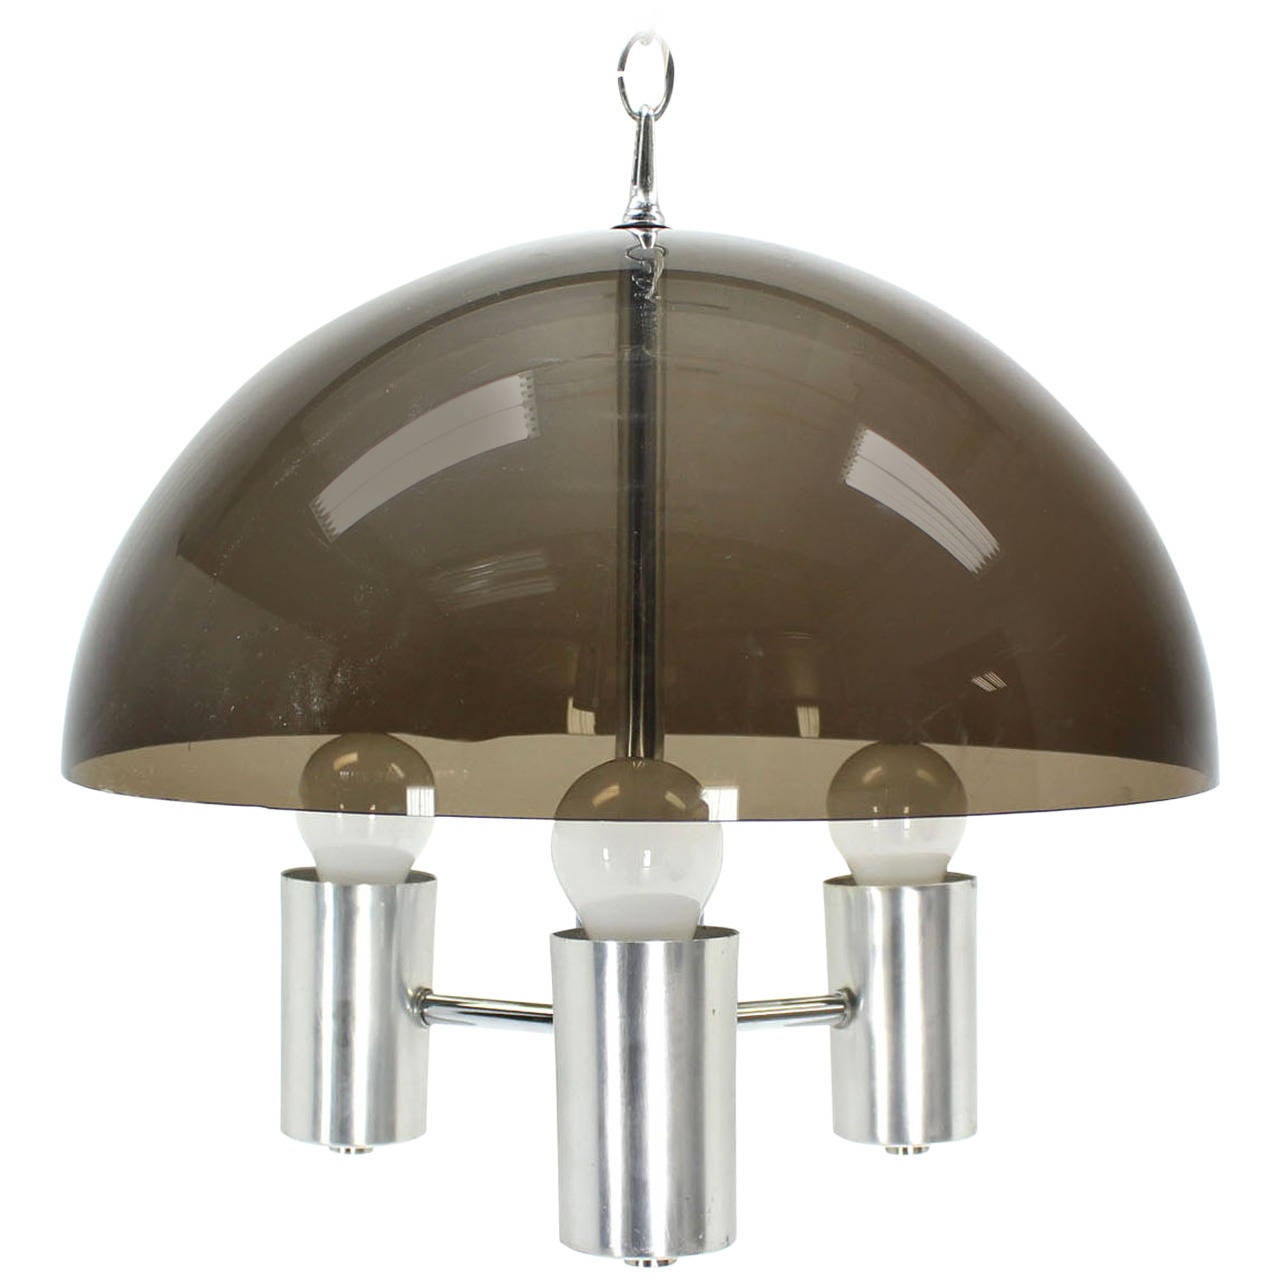 Smoked Dome Chrome Mid Century Modern Light Fixture For Sale At 1stdibs